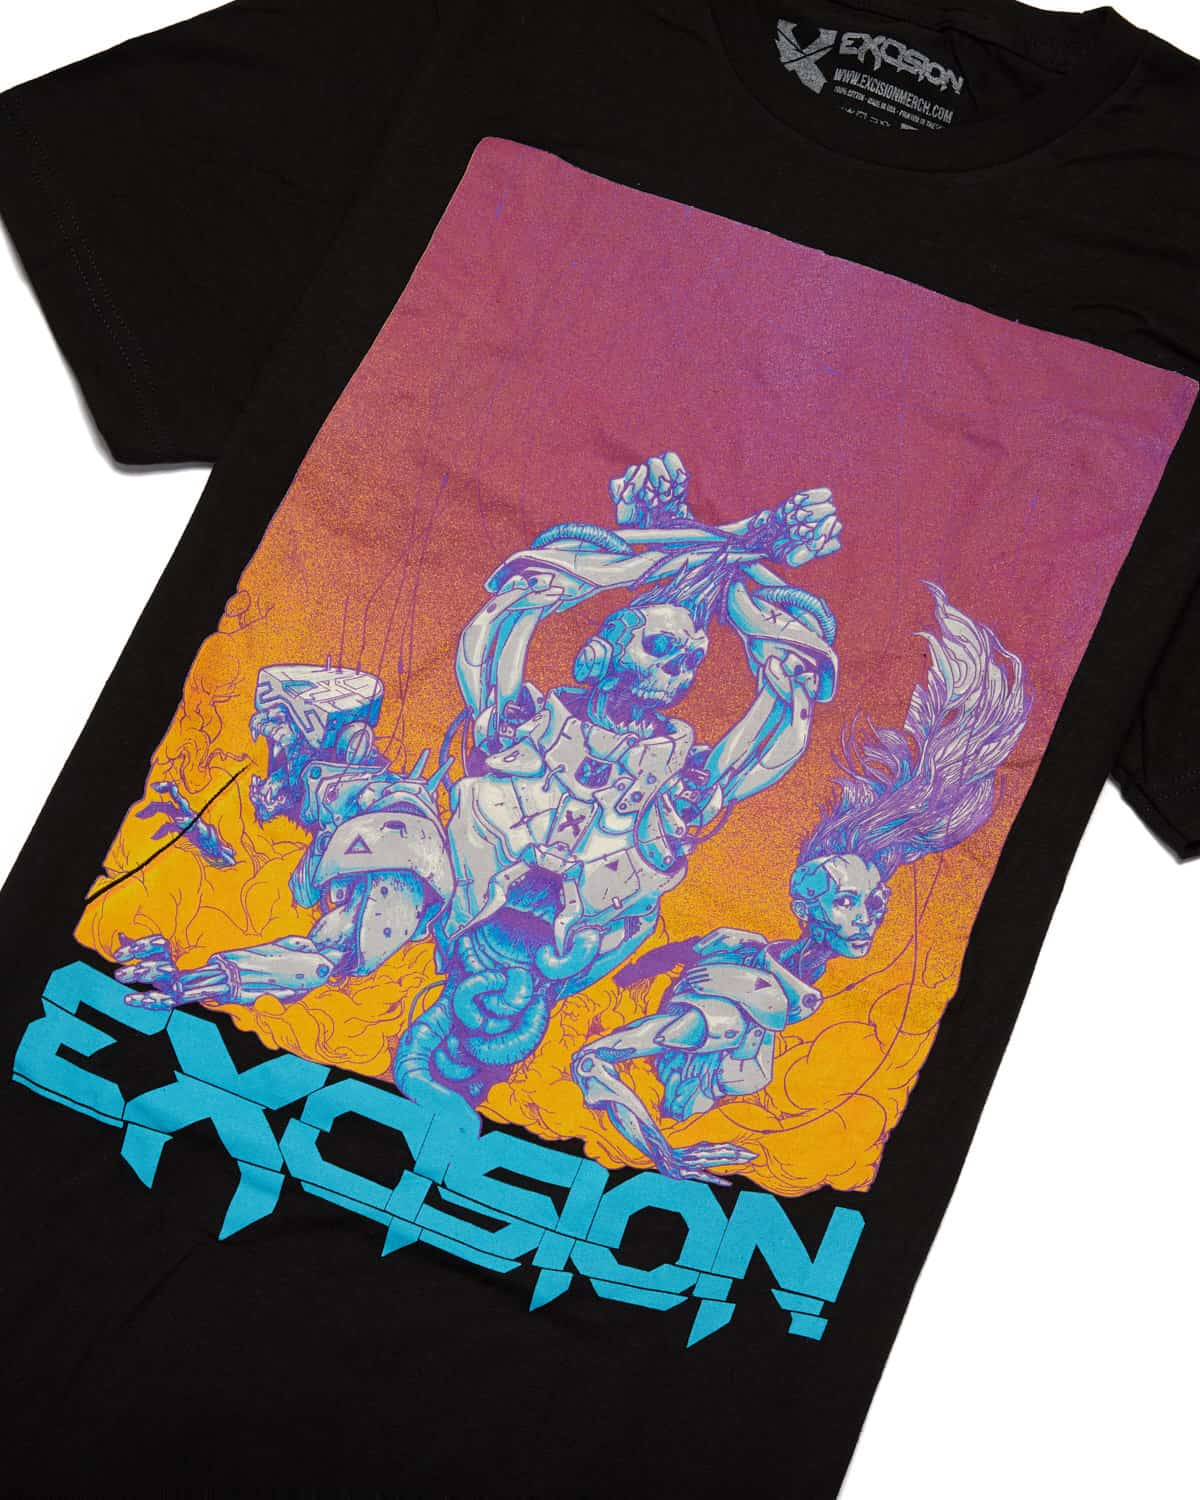 Excision 'Moshpit' Unisex T-Shirt - Black